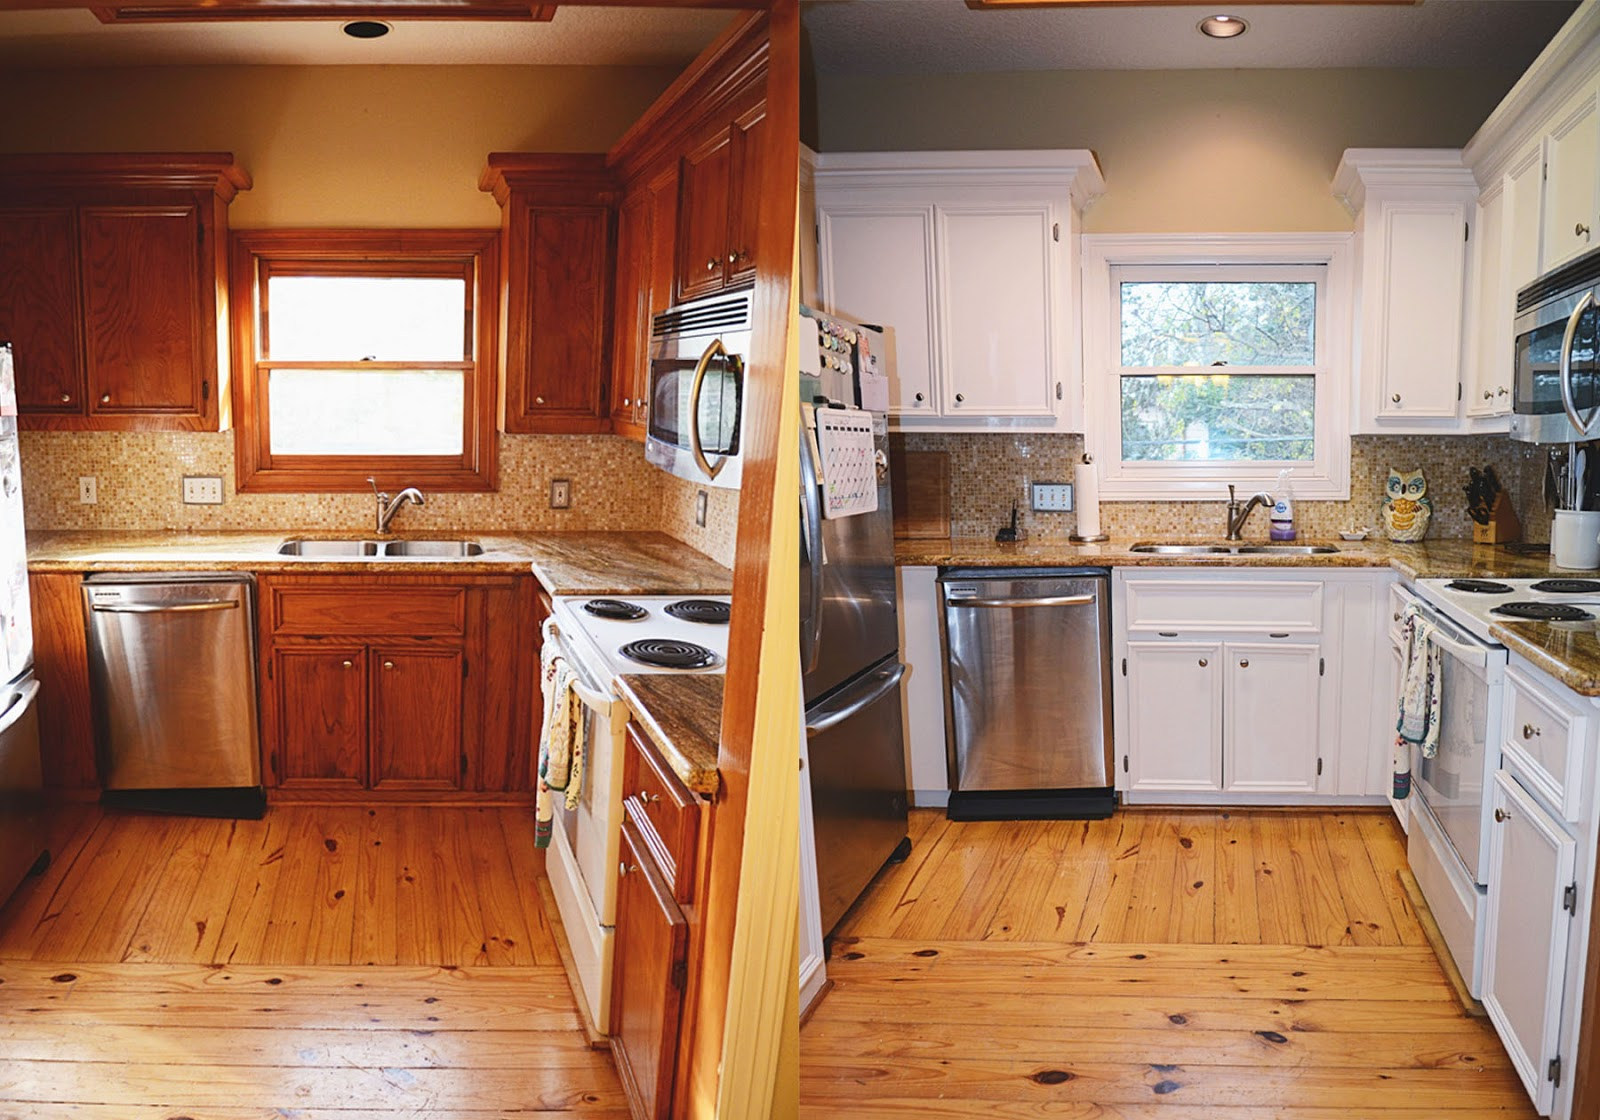 Ordinaire Kitchen Redo | Rustoleum Cabinet Transformation